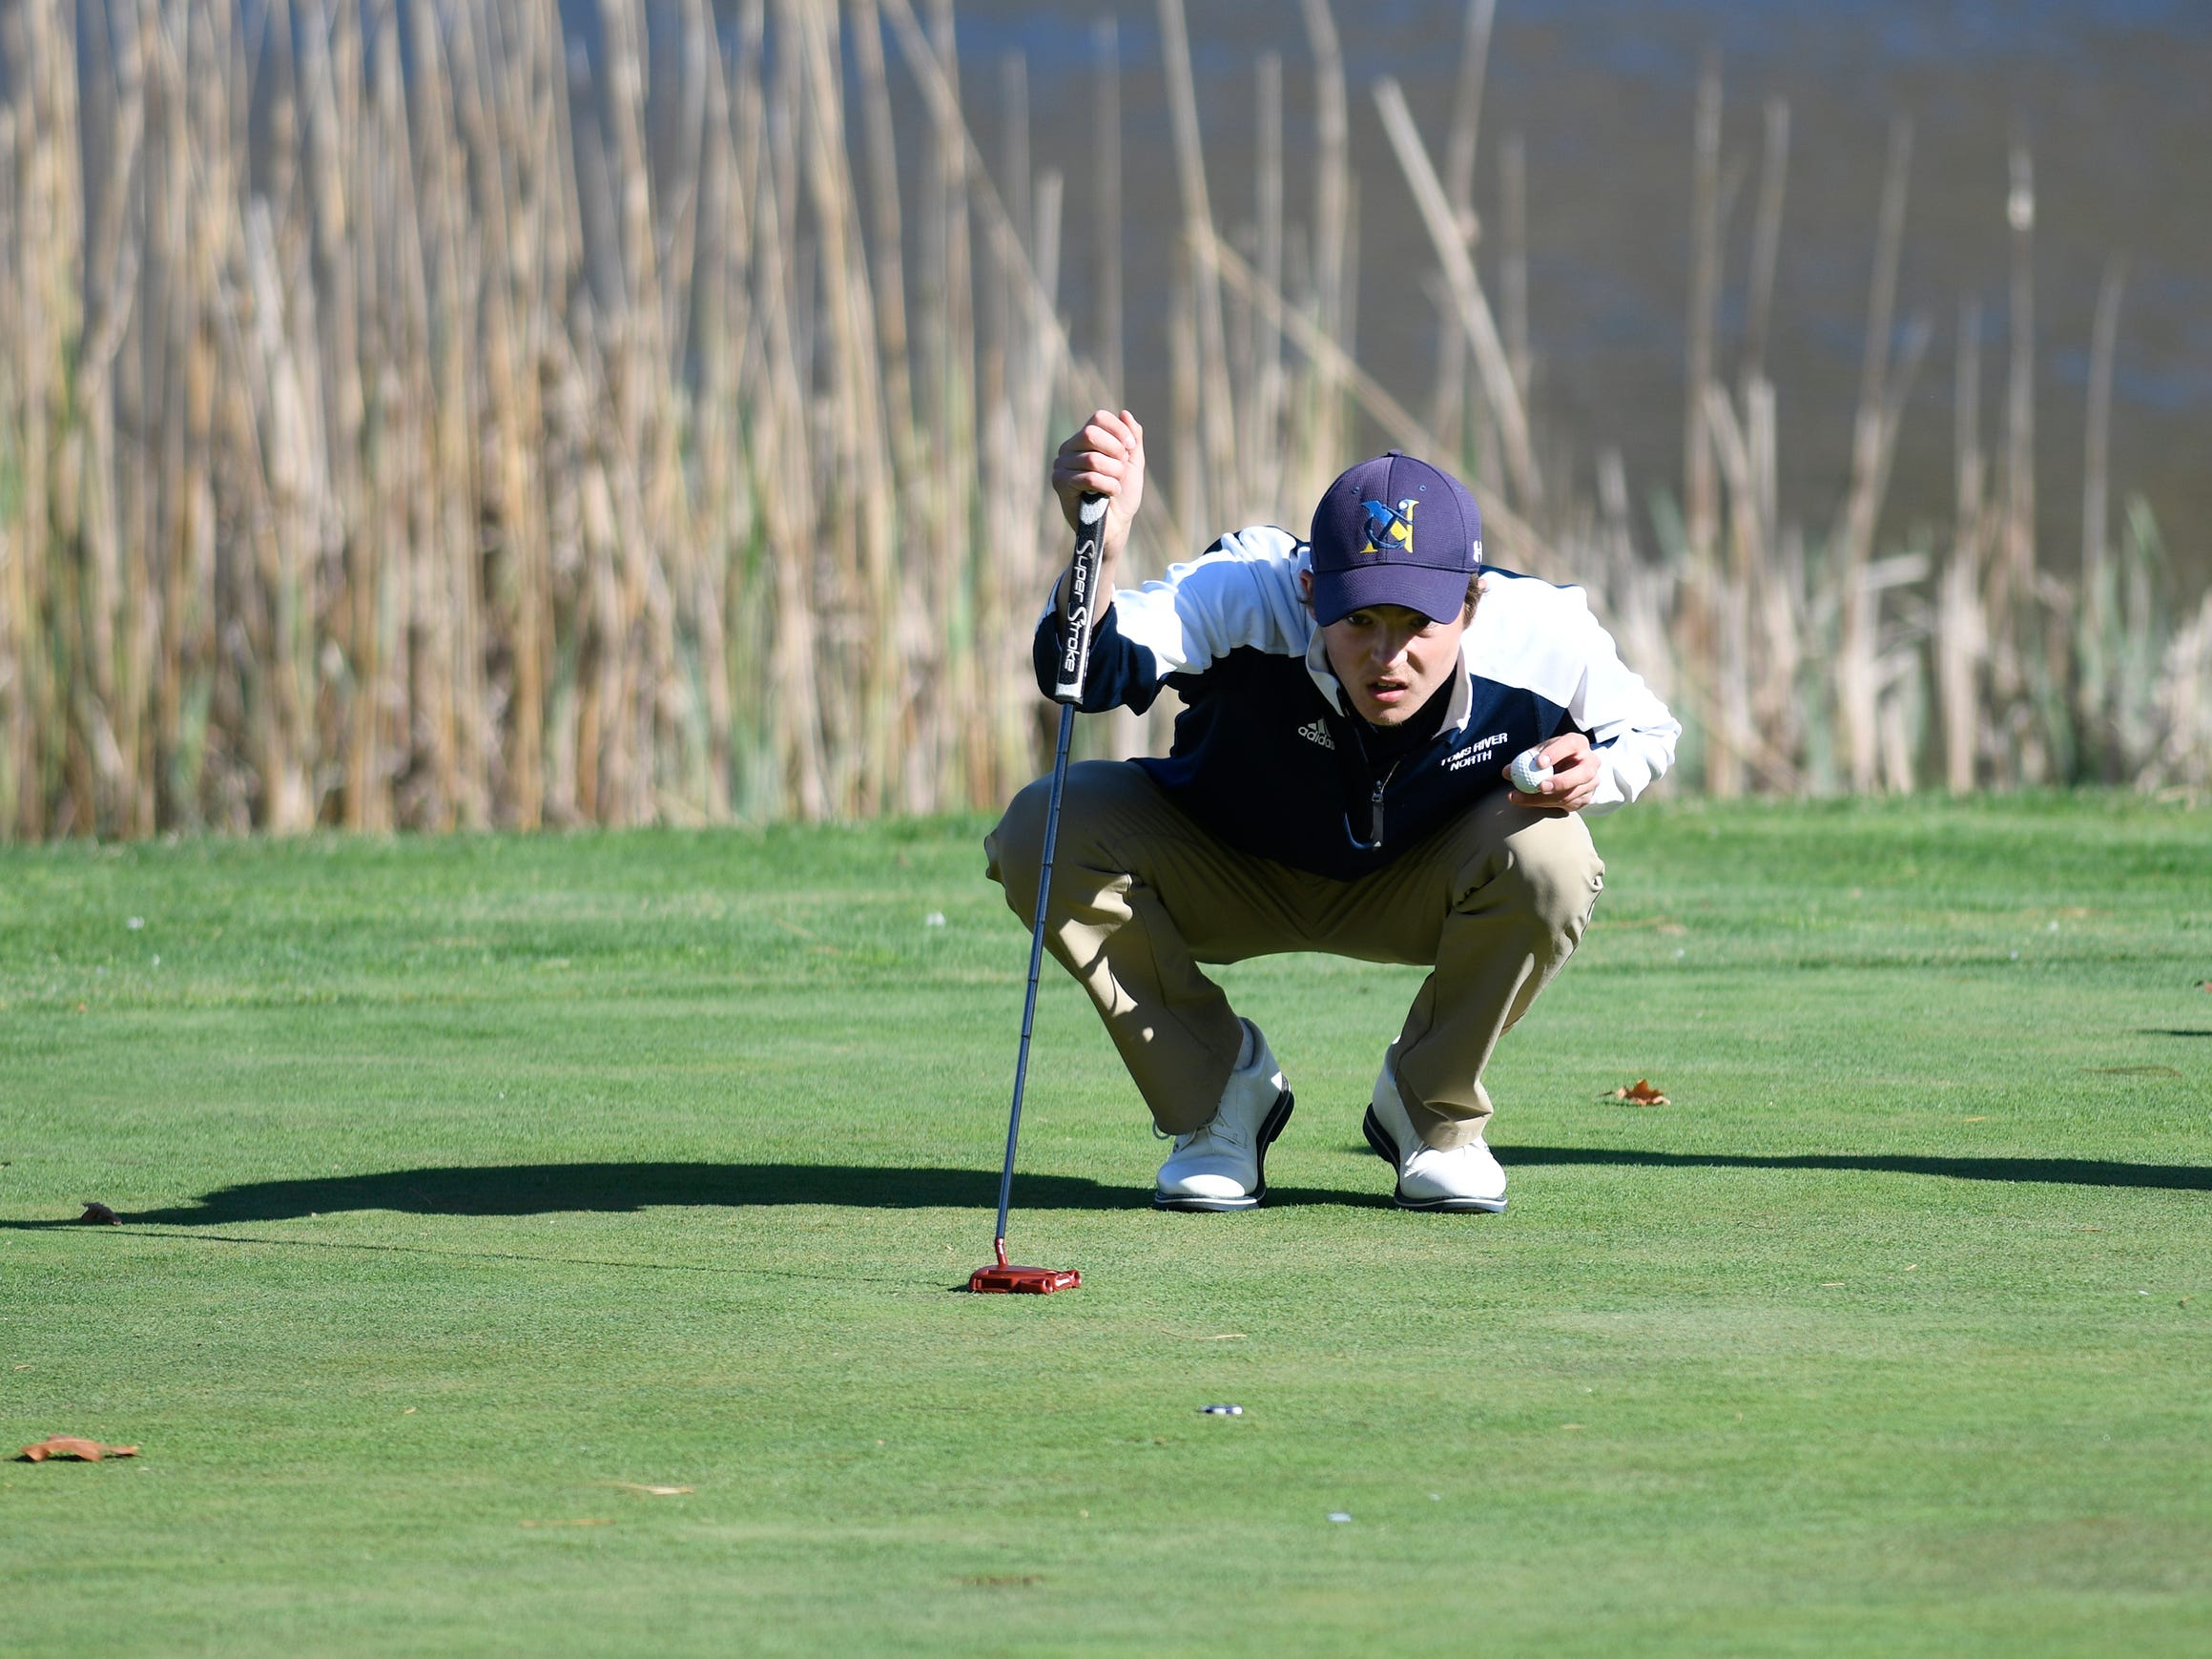 Connor Bekefi of Tome River North competes at the Ocean County Tournament on April 15, 2019,  at Sea Oaks in Little Egg Harbor. Toms River North's Connor Bekefi emerged as the individual champion with a 3-over-par 75, four shots better than teammate Leo Kane. Toms River North successfully defended its team title, posting a total of 336, which was 18 shots better than Southern. Brick Memorial finished third.